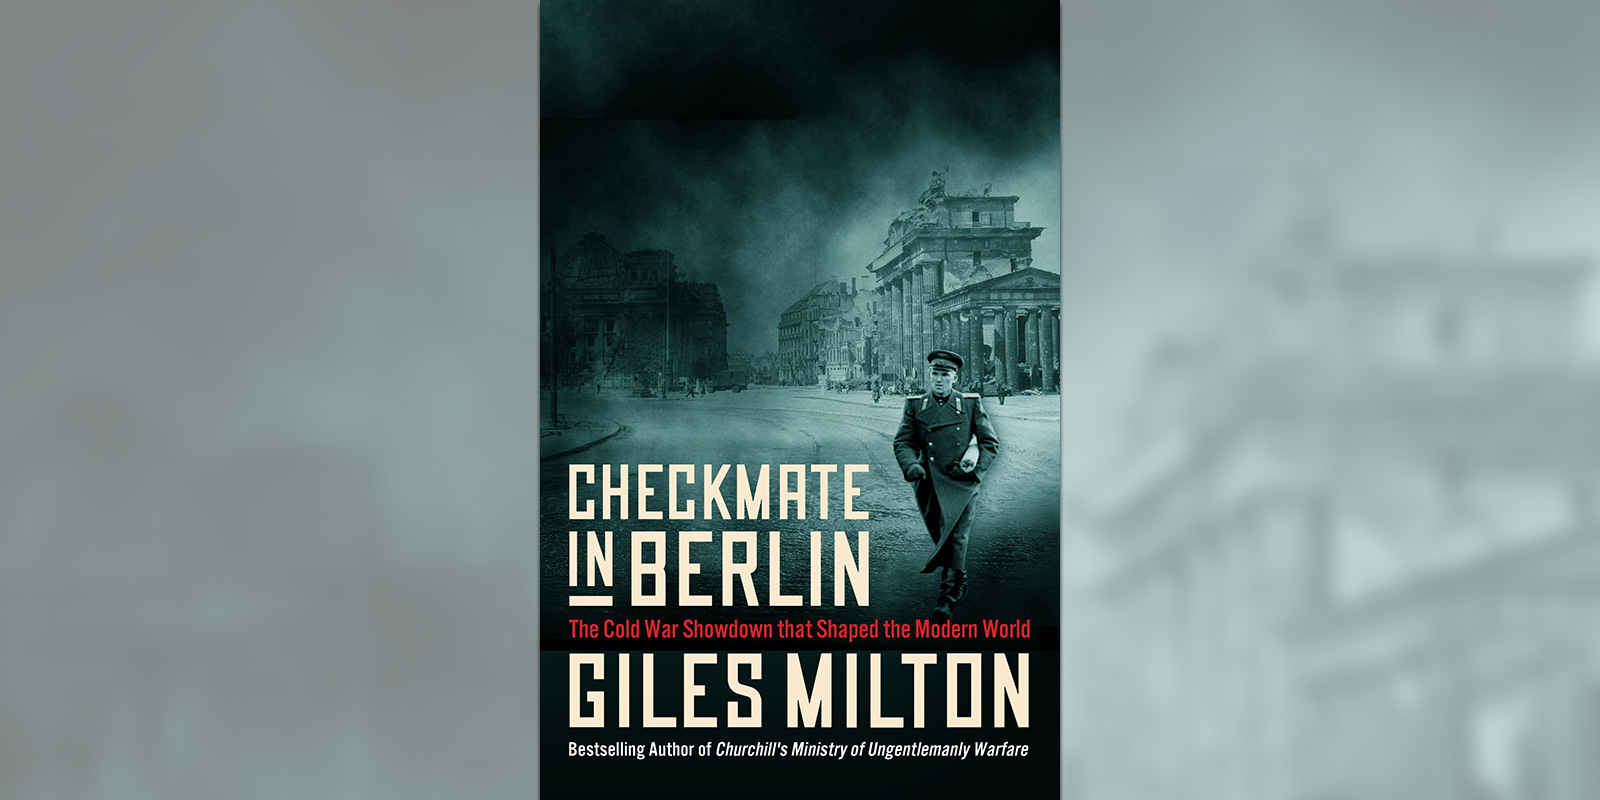 'Checkmate in Berlin' book cover